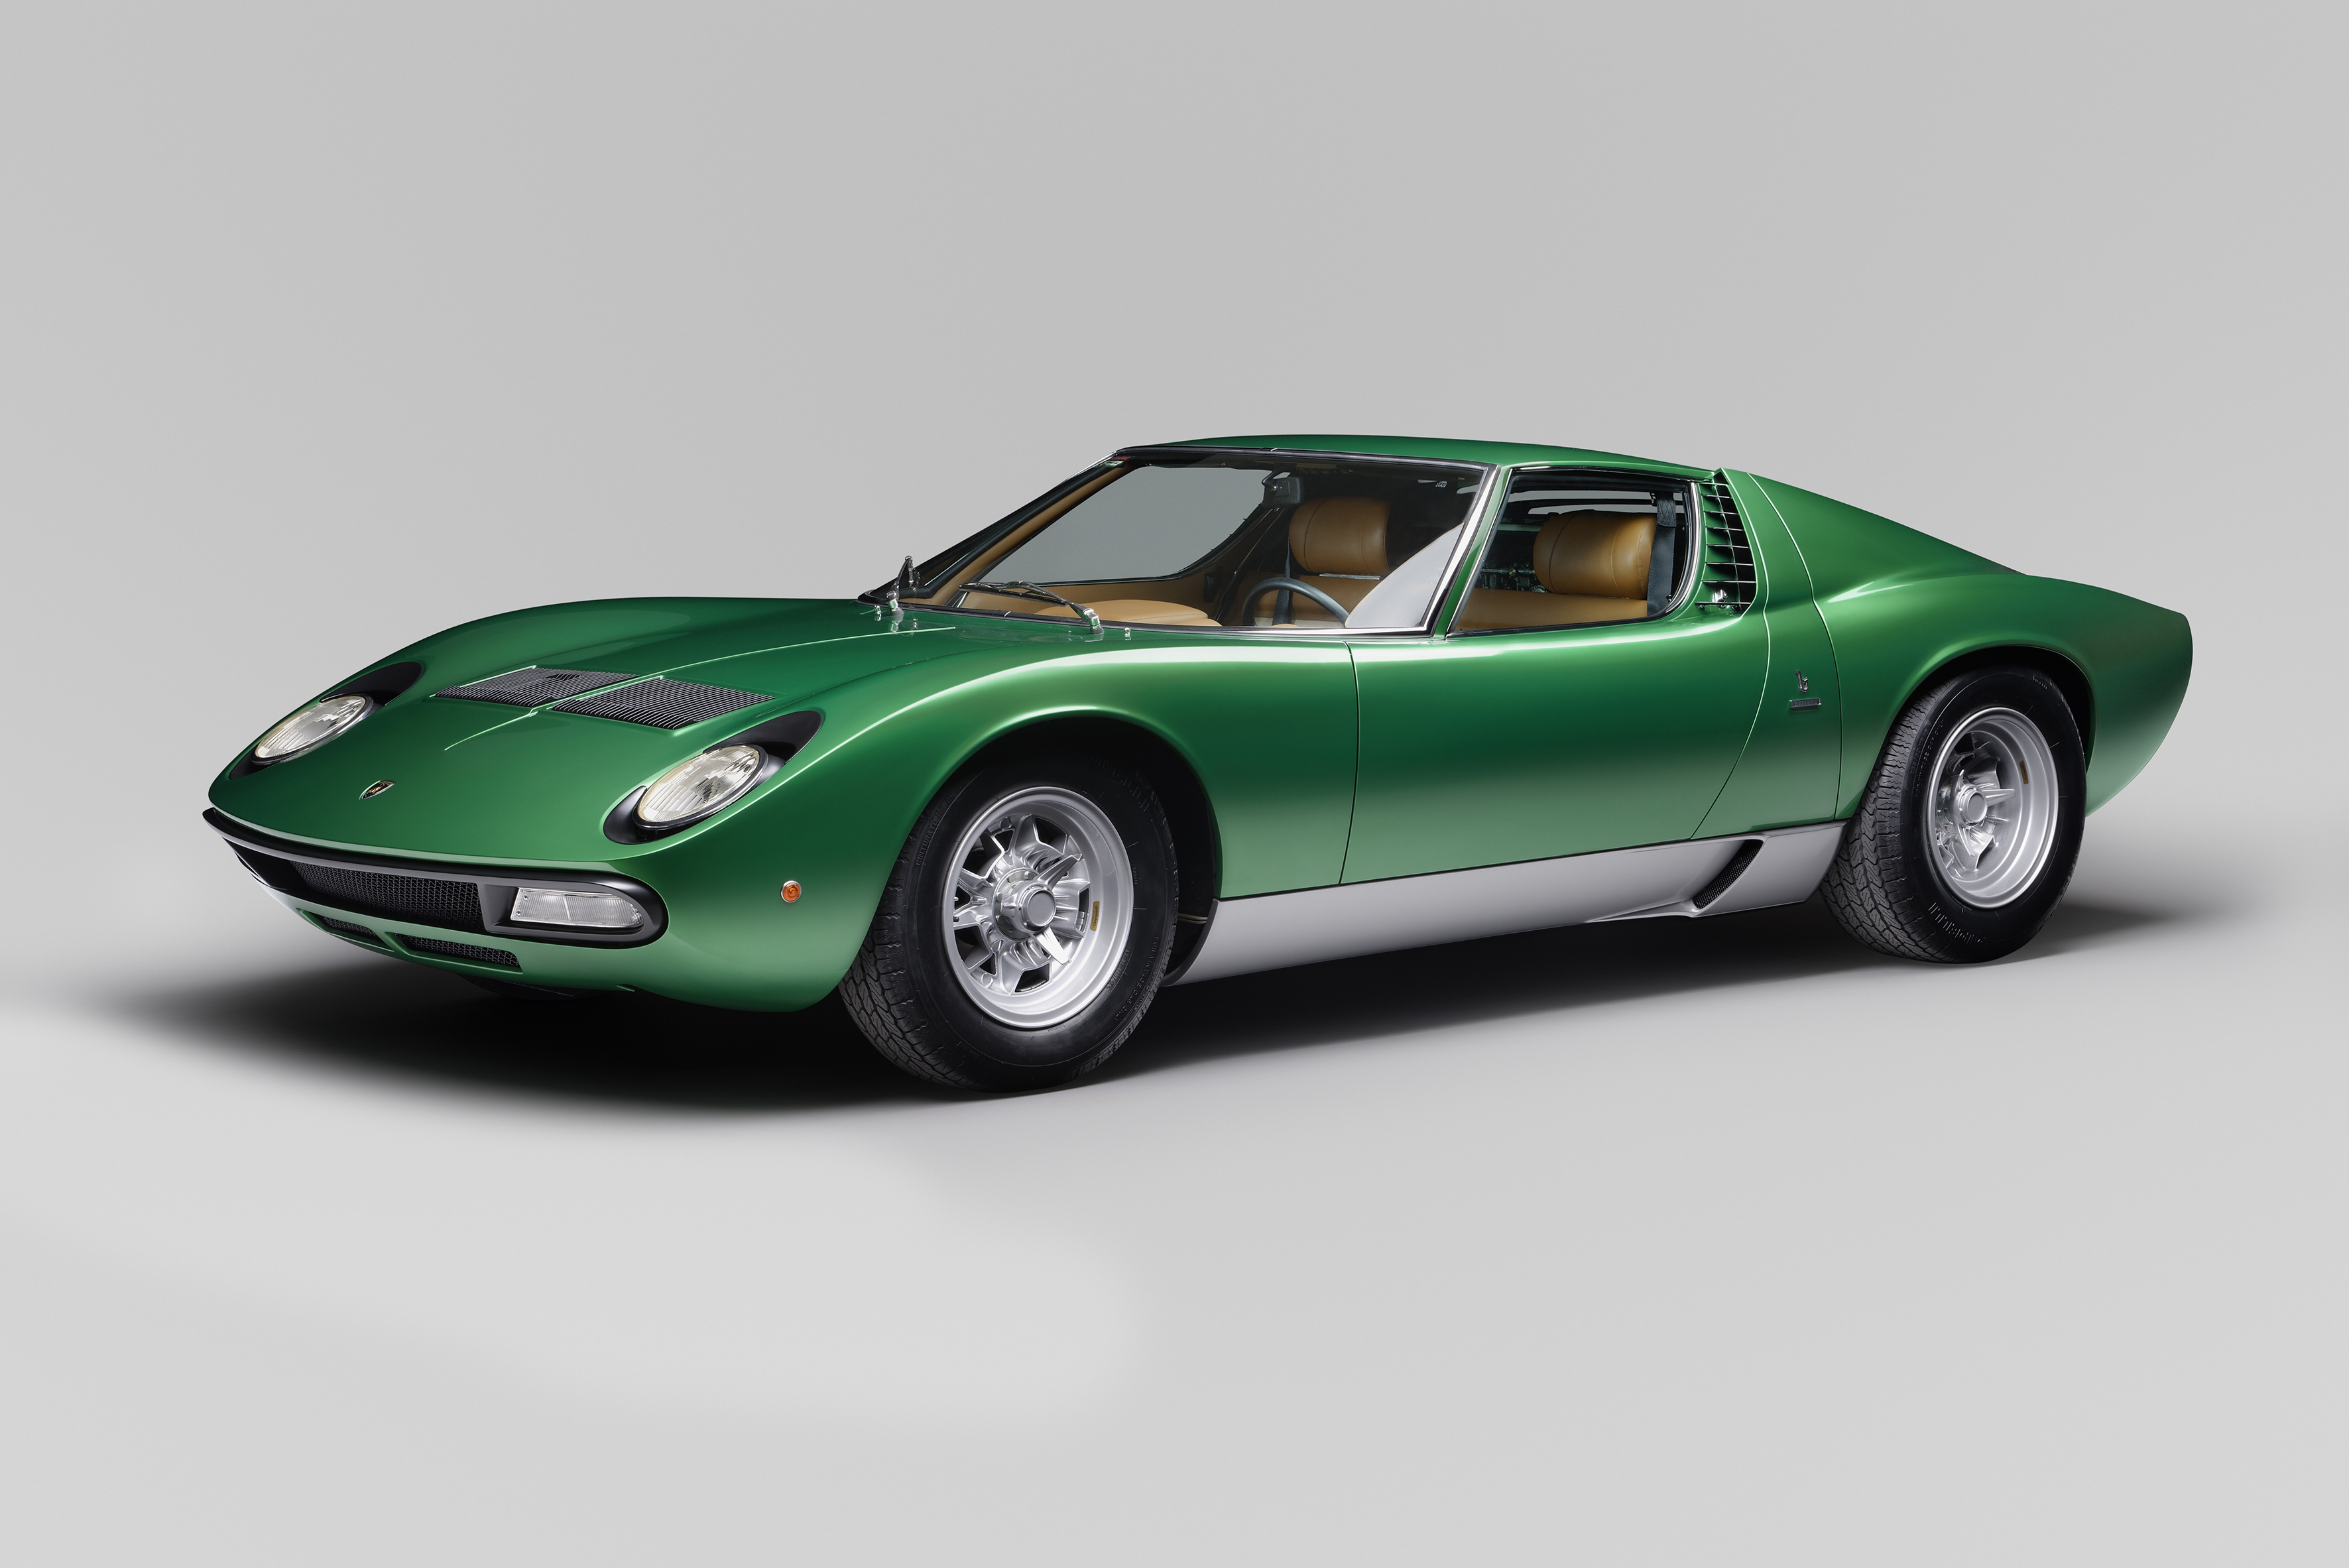 Lamborghini completely restored the first Miura SV for the car's 50th anniversary